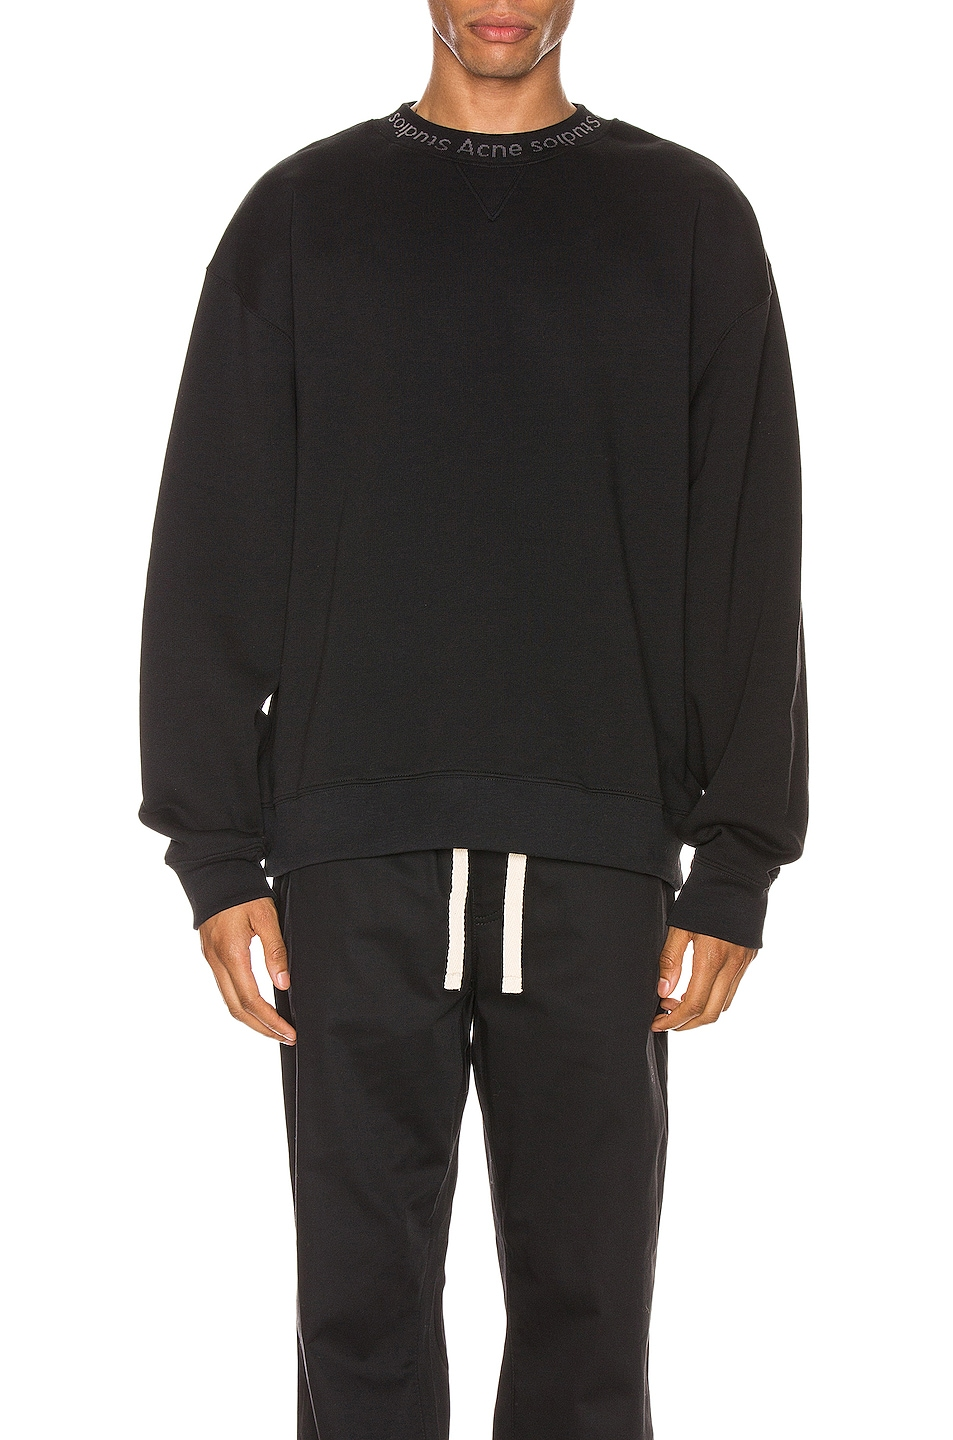 Image 1 of Acne Studios Flogho Sweatshirt in Black